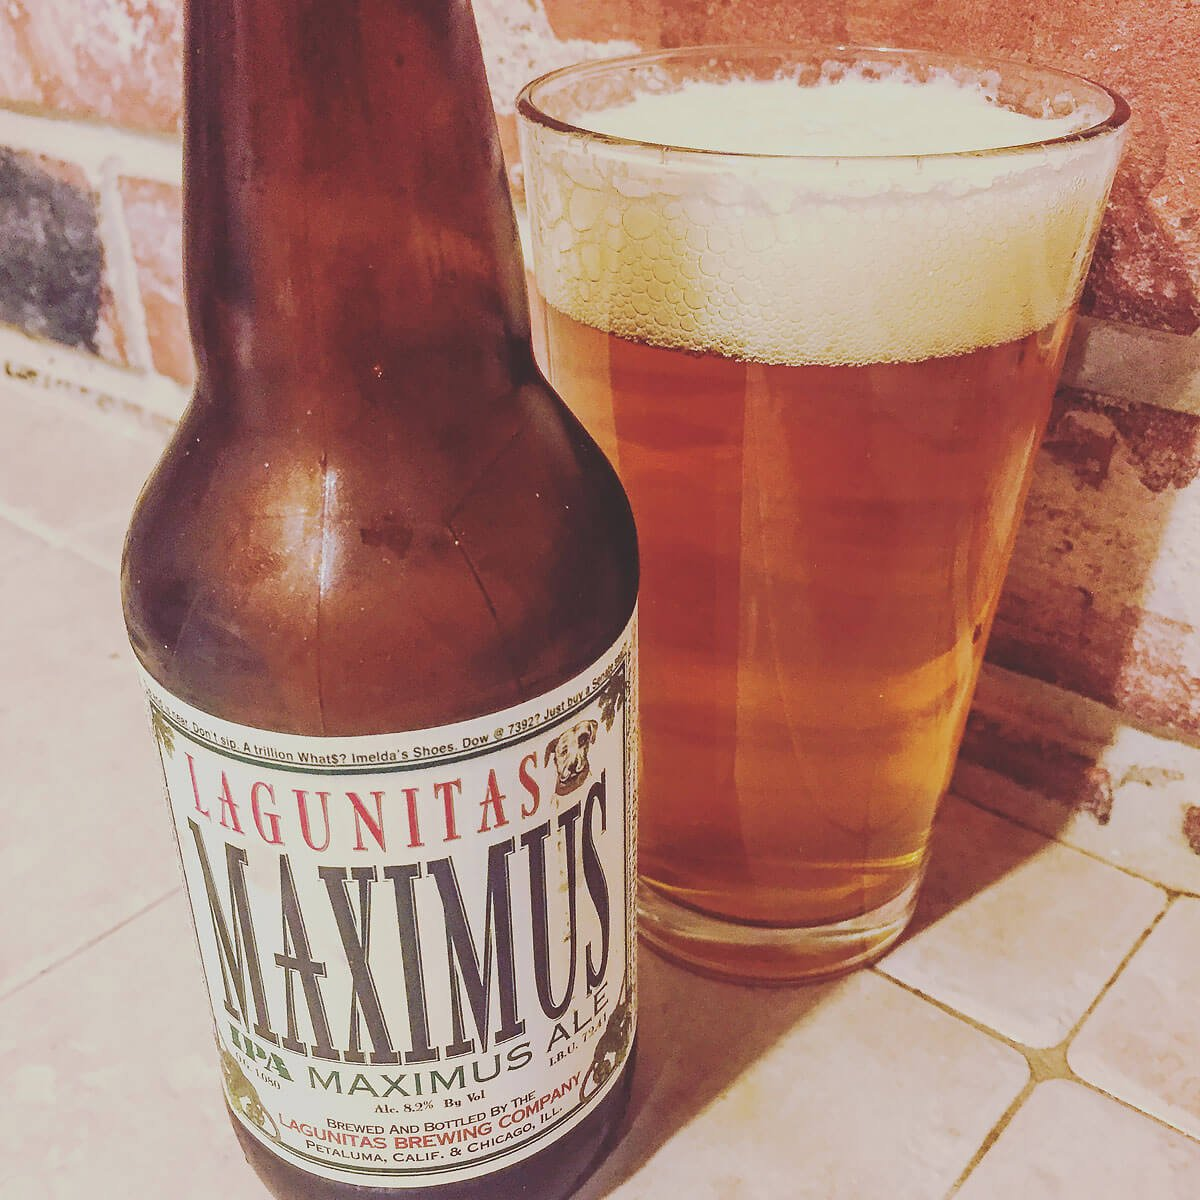 Maximus Ale, an American Double IPA by Lagunitas Brewing Company